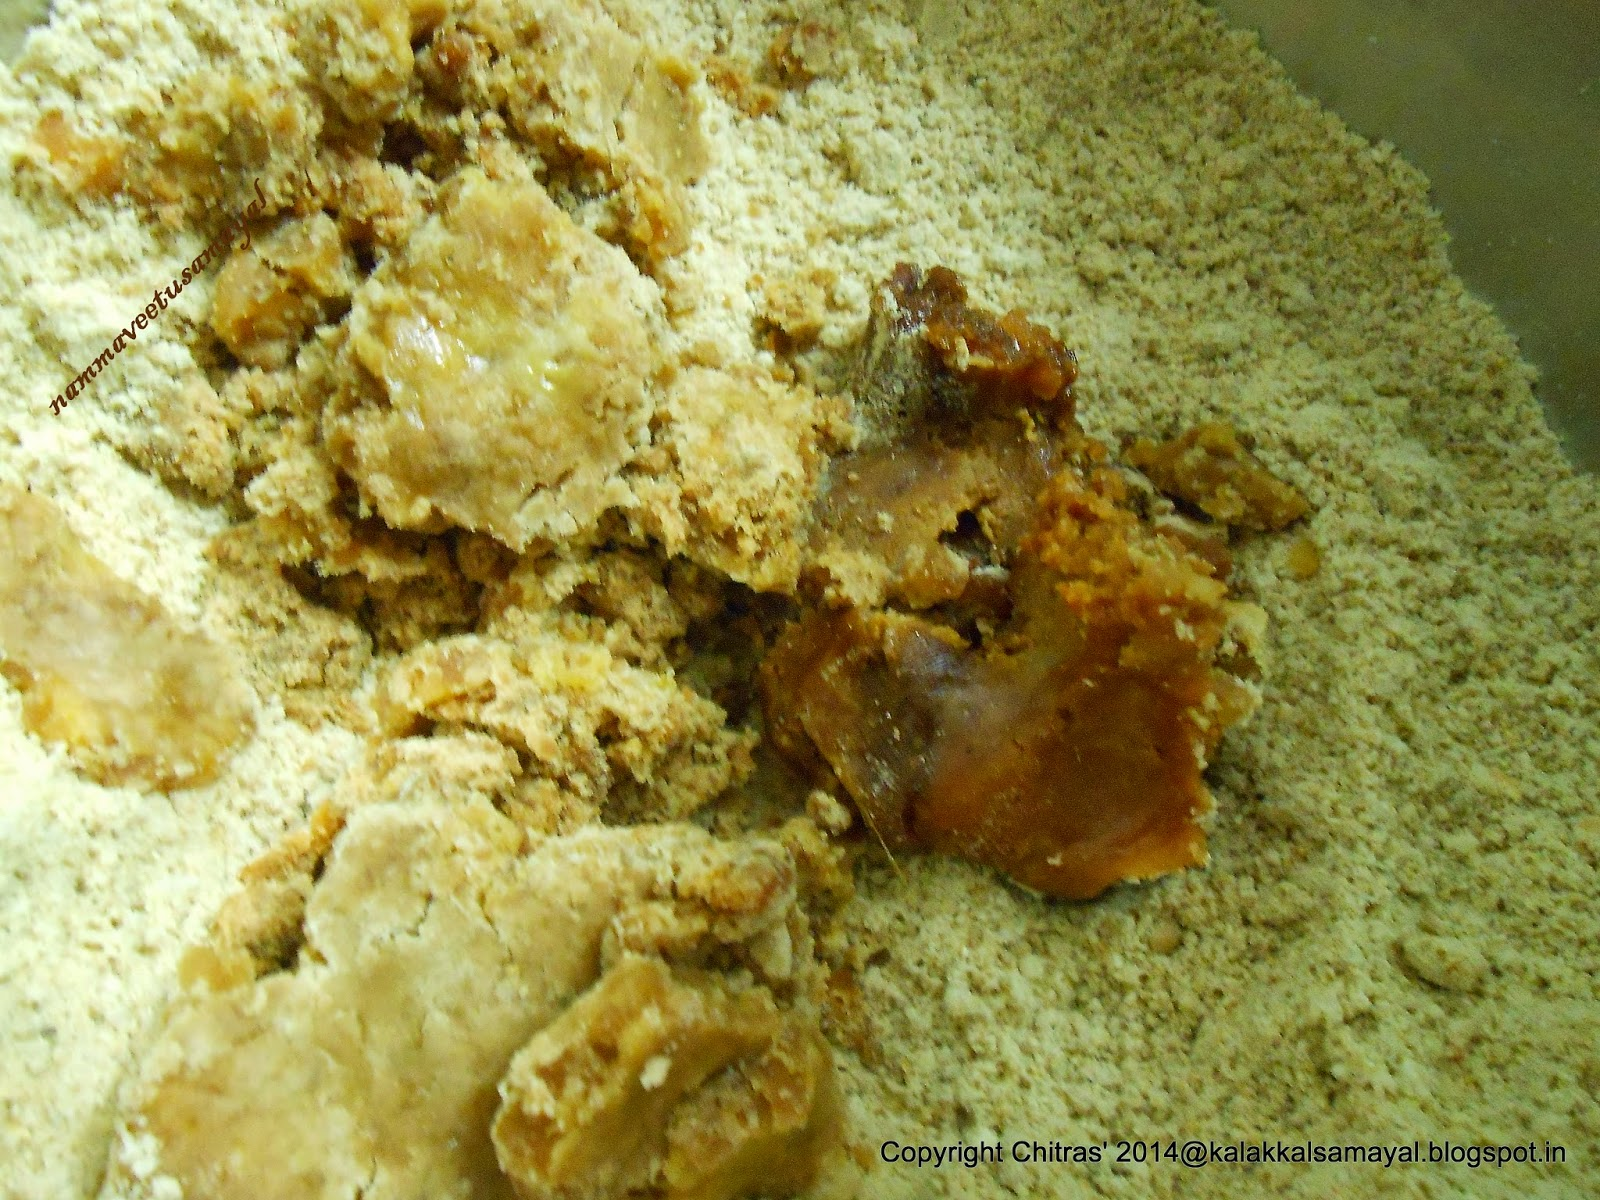 Add Jaggery to the mixture